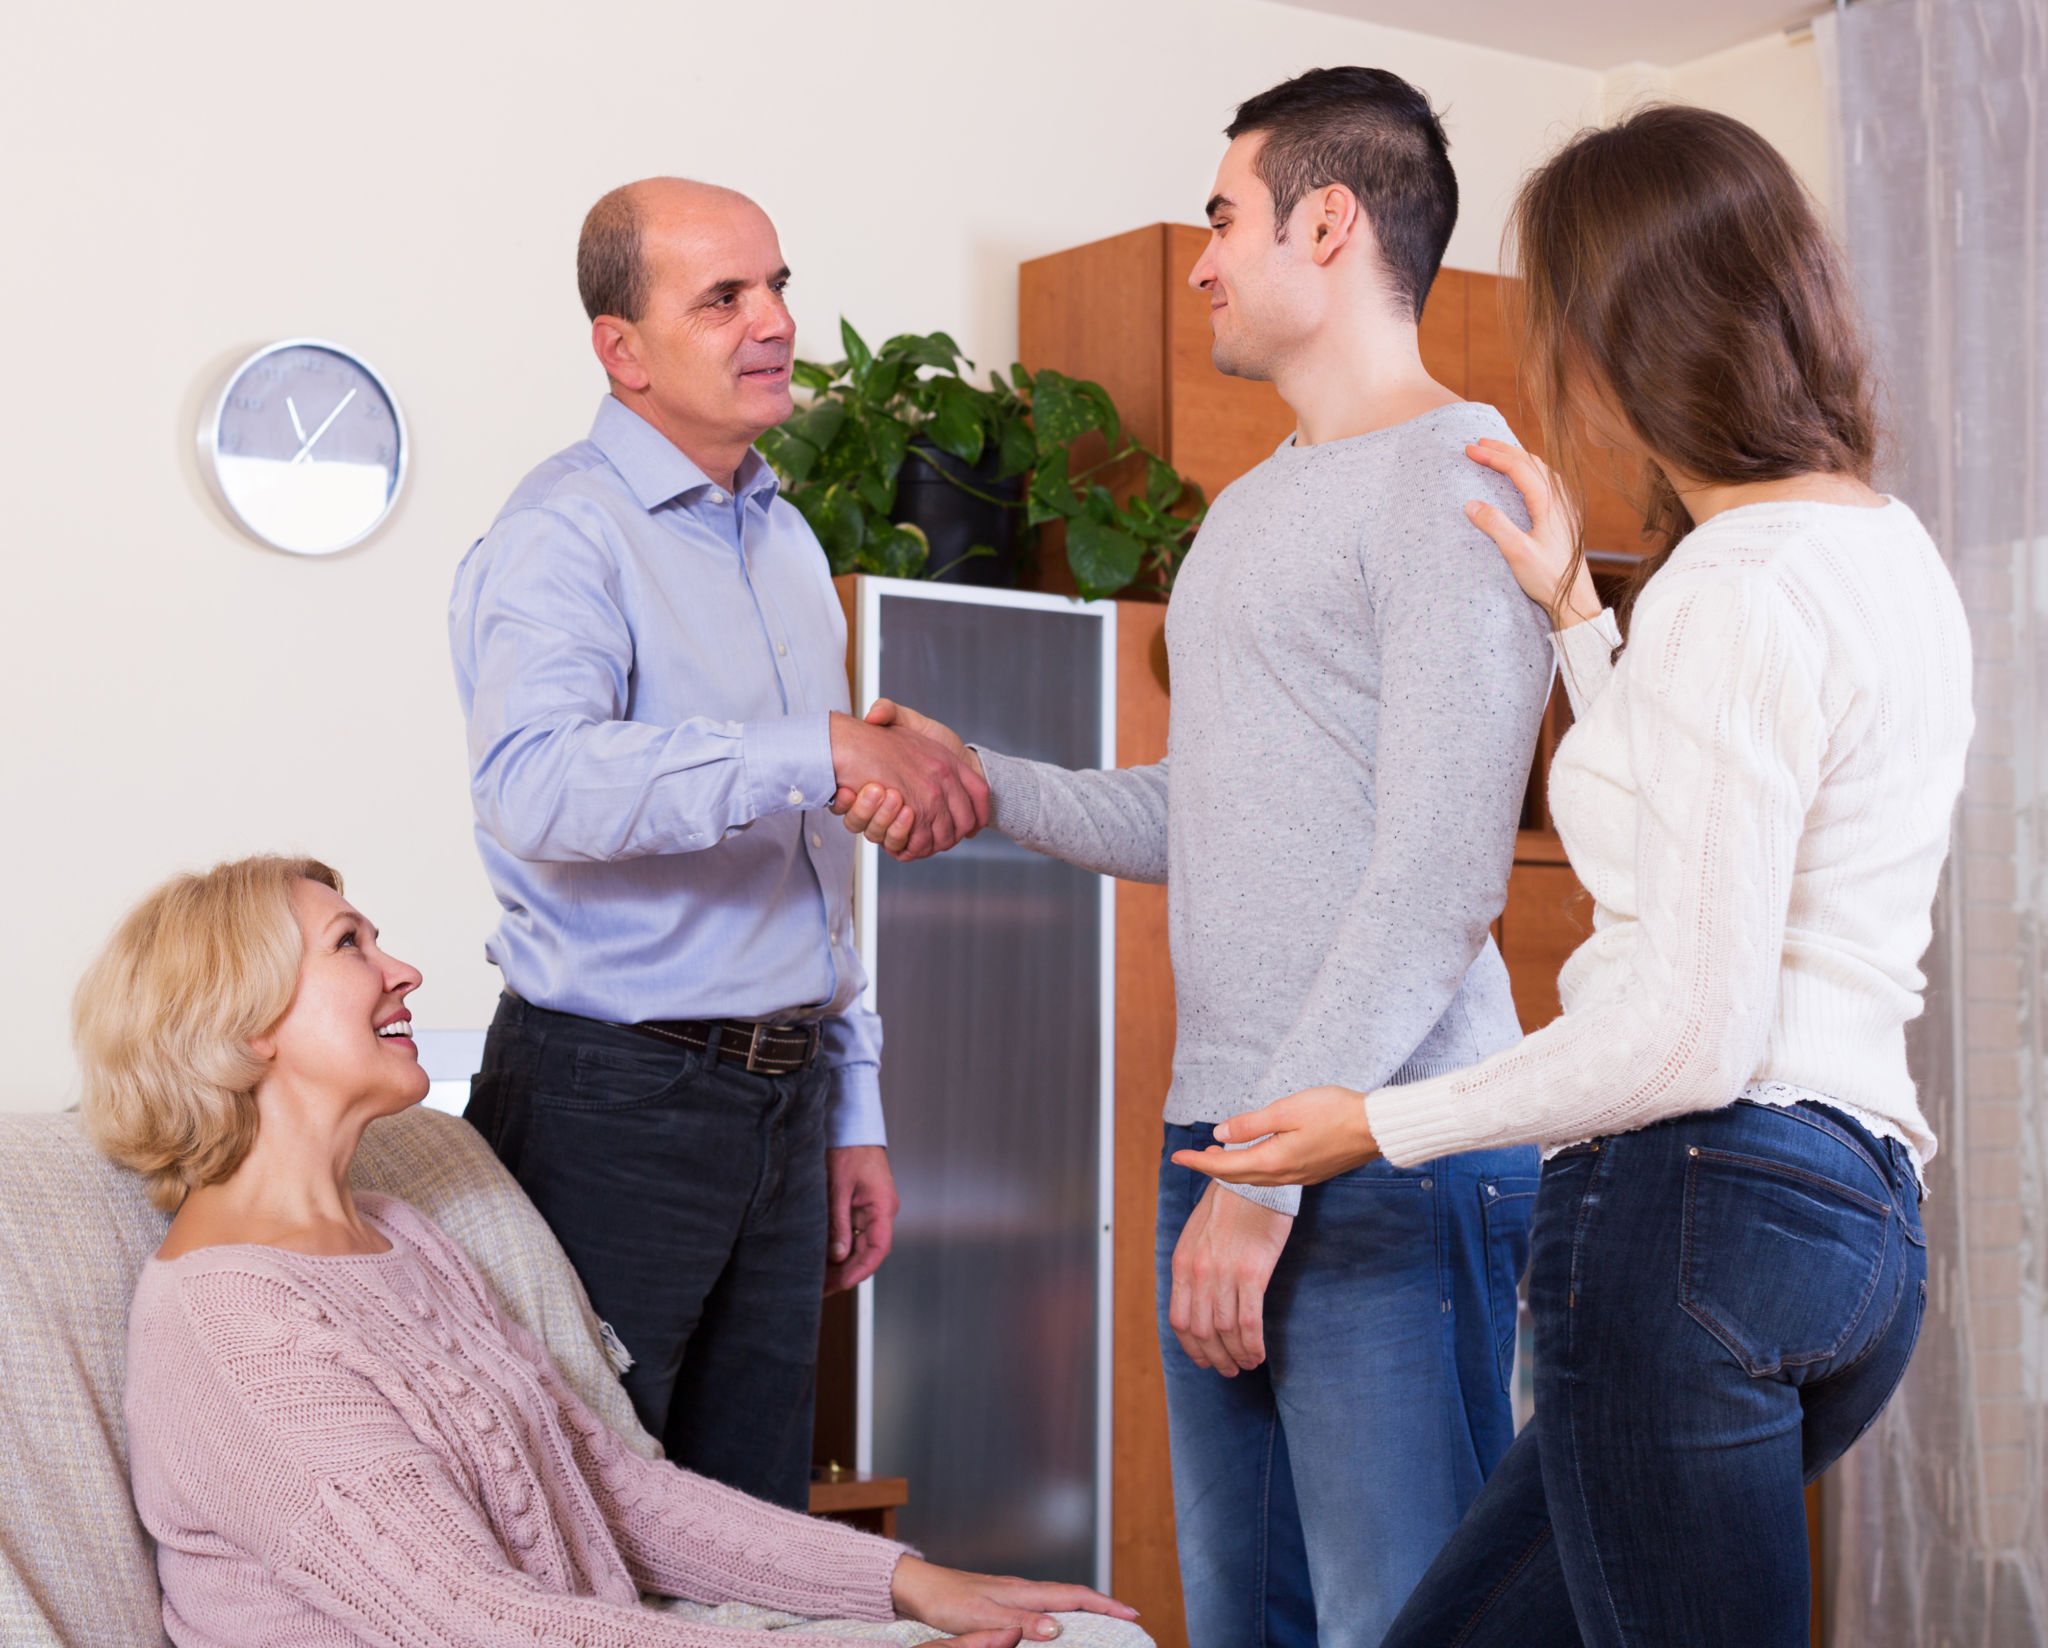 image of a man meeting the parents and shaking hands with girlfriend's father.